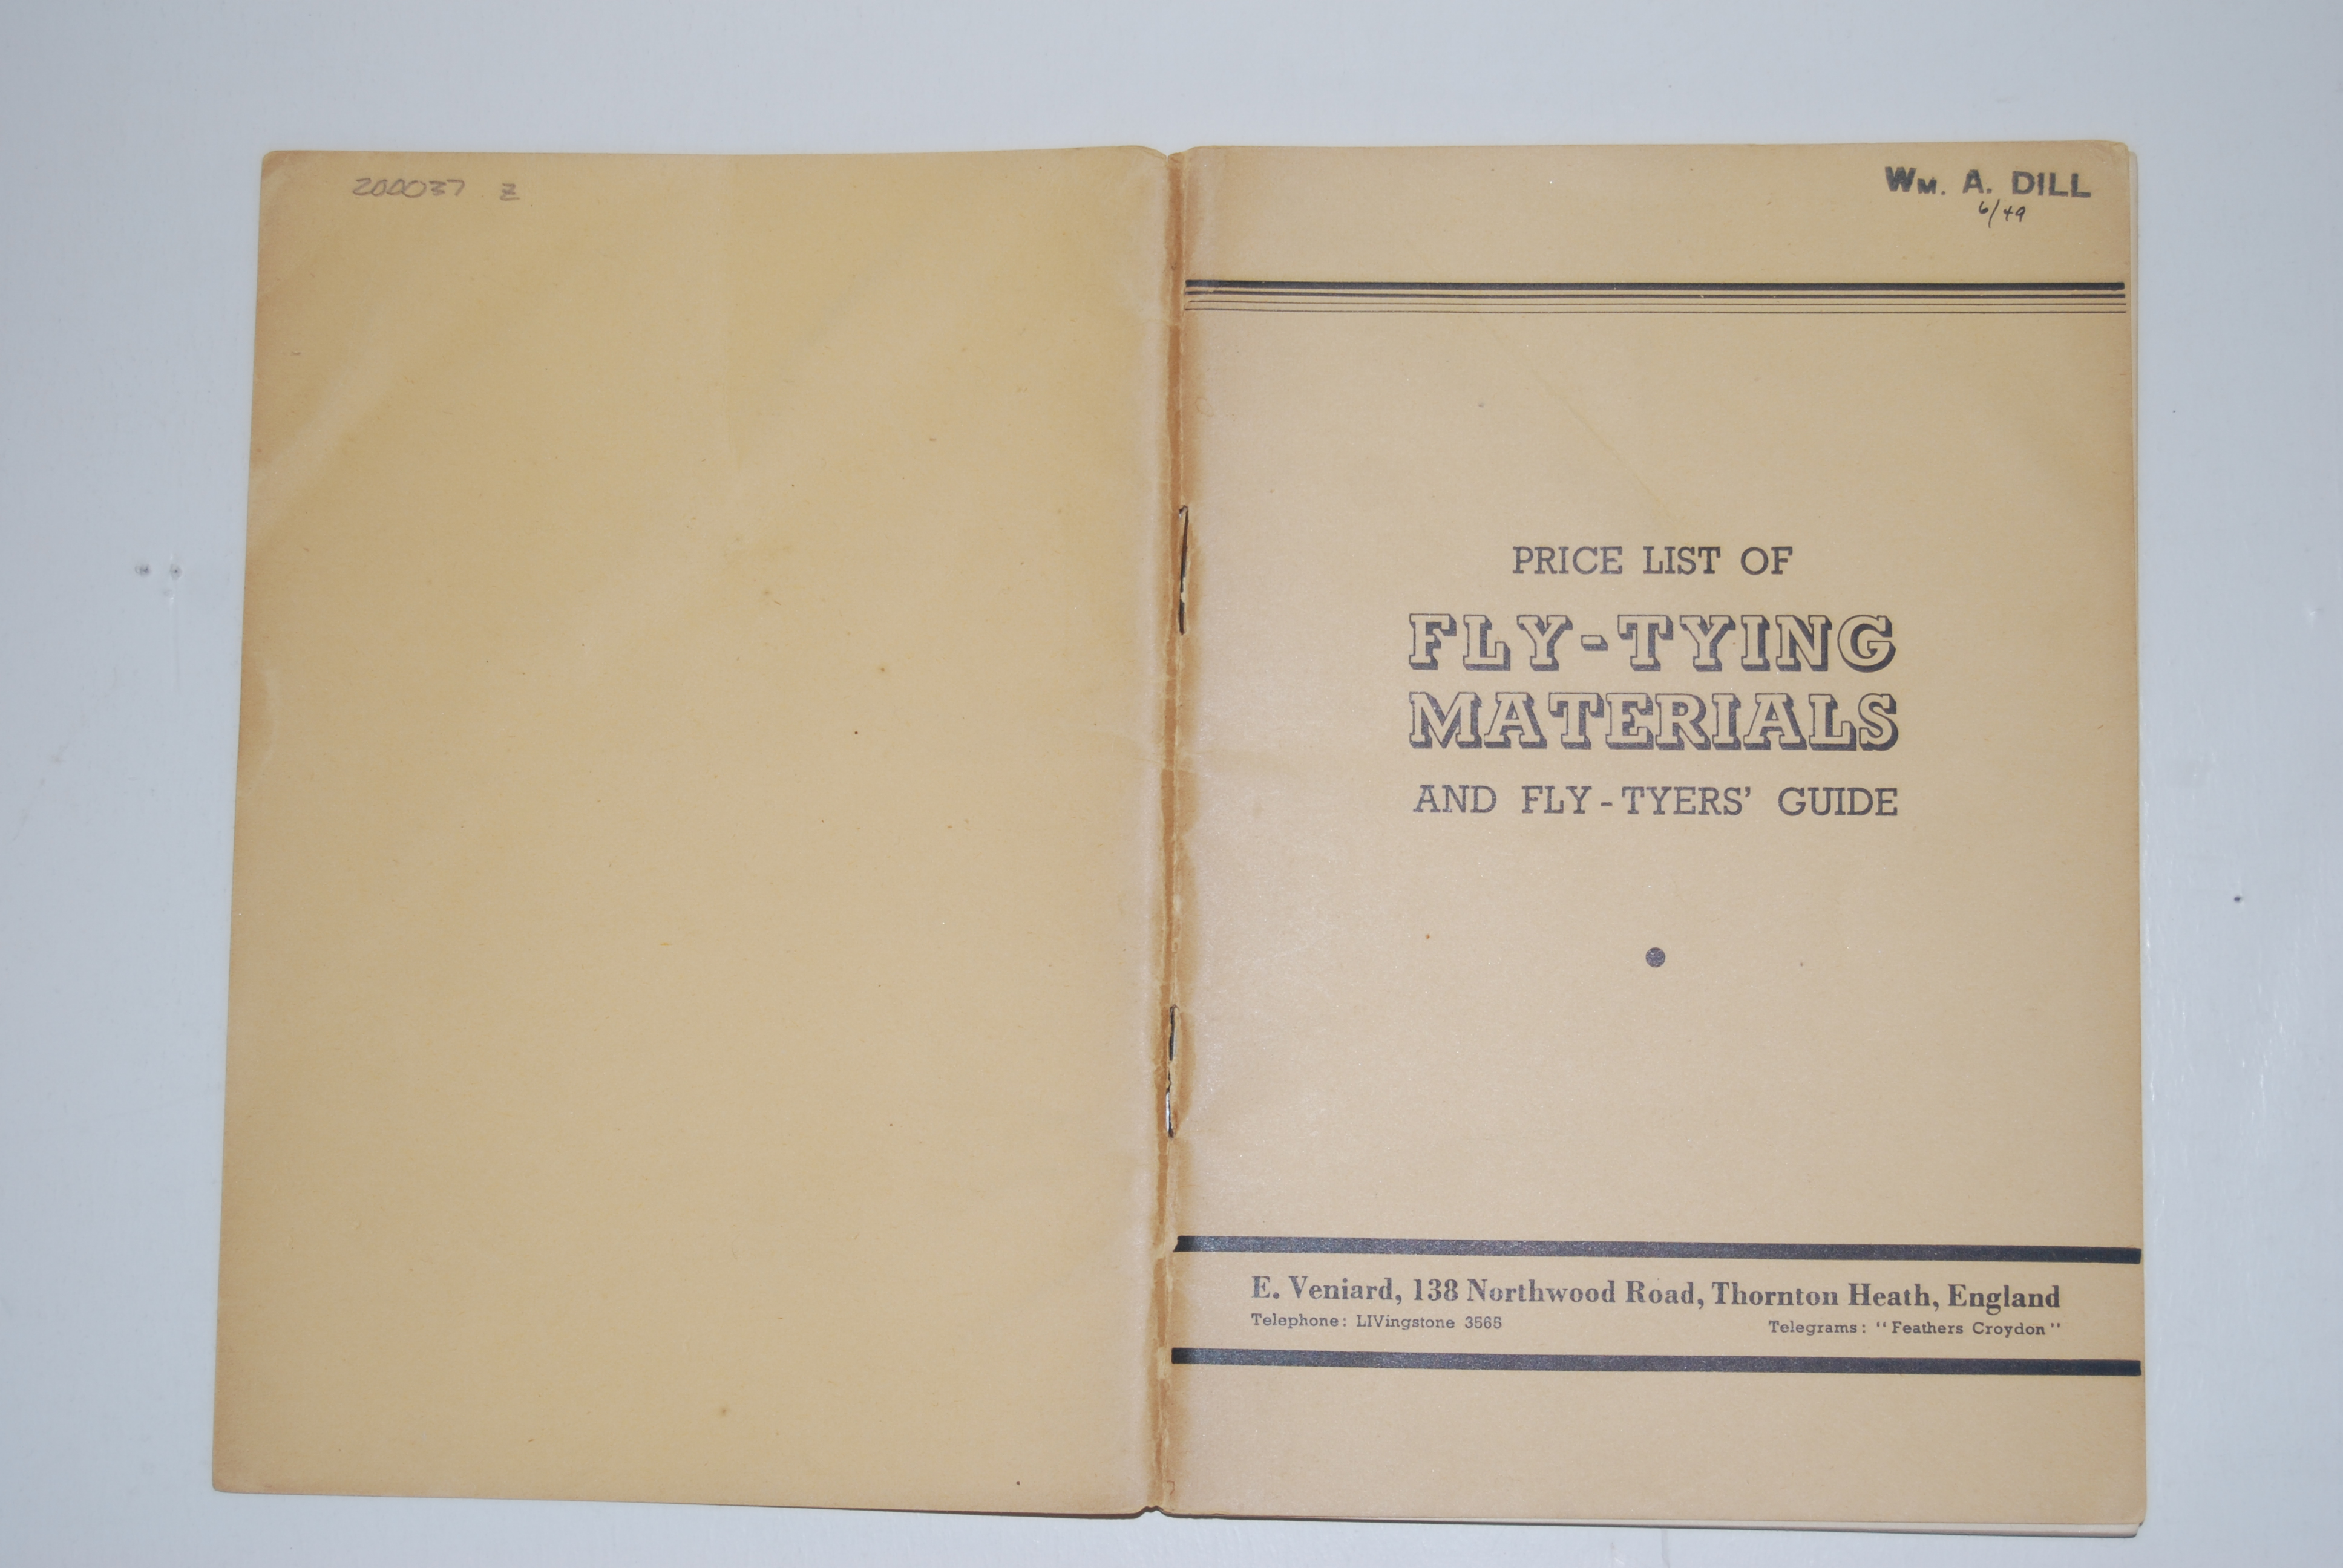 Image for PRICE LIST OF FLY-TYING MATERIALS And Fly-Tyer's Guide. Thornton Heath UK: E. Veniard. 64 p. 1949. Paper Wraps.